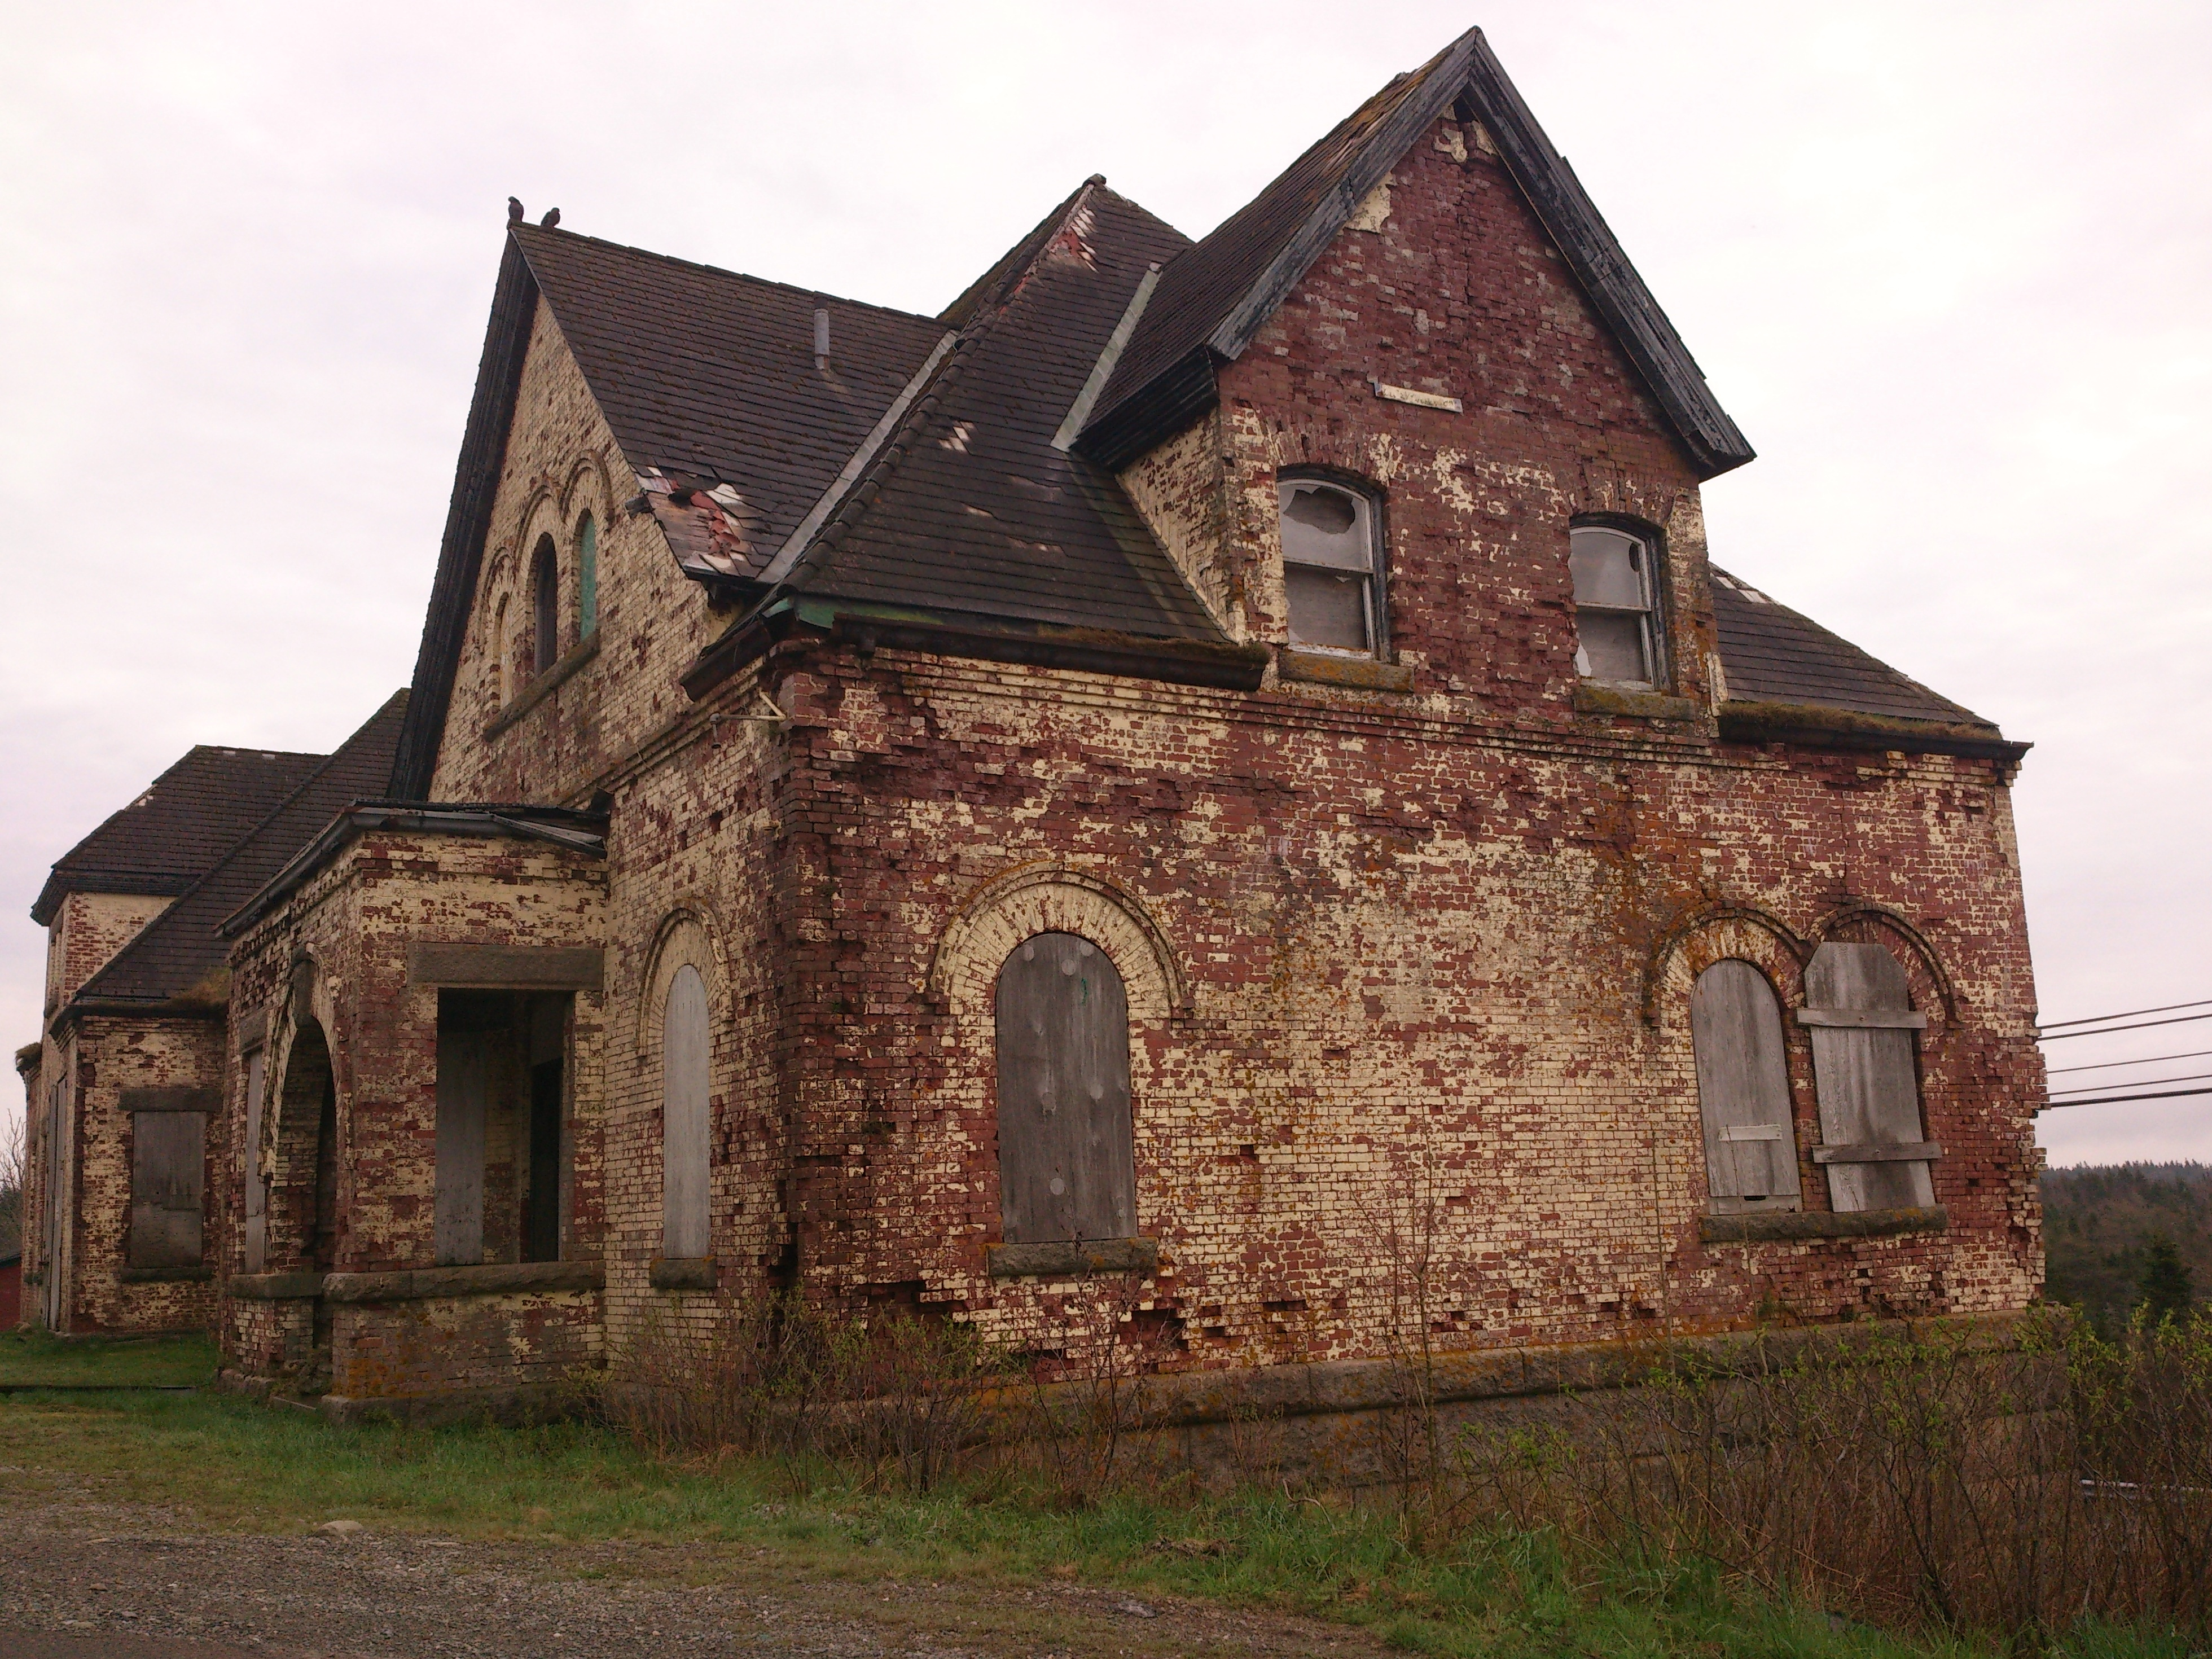 FileCanso Nova Scotia Old Cable Building Where First